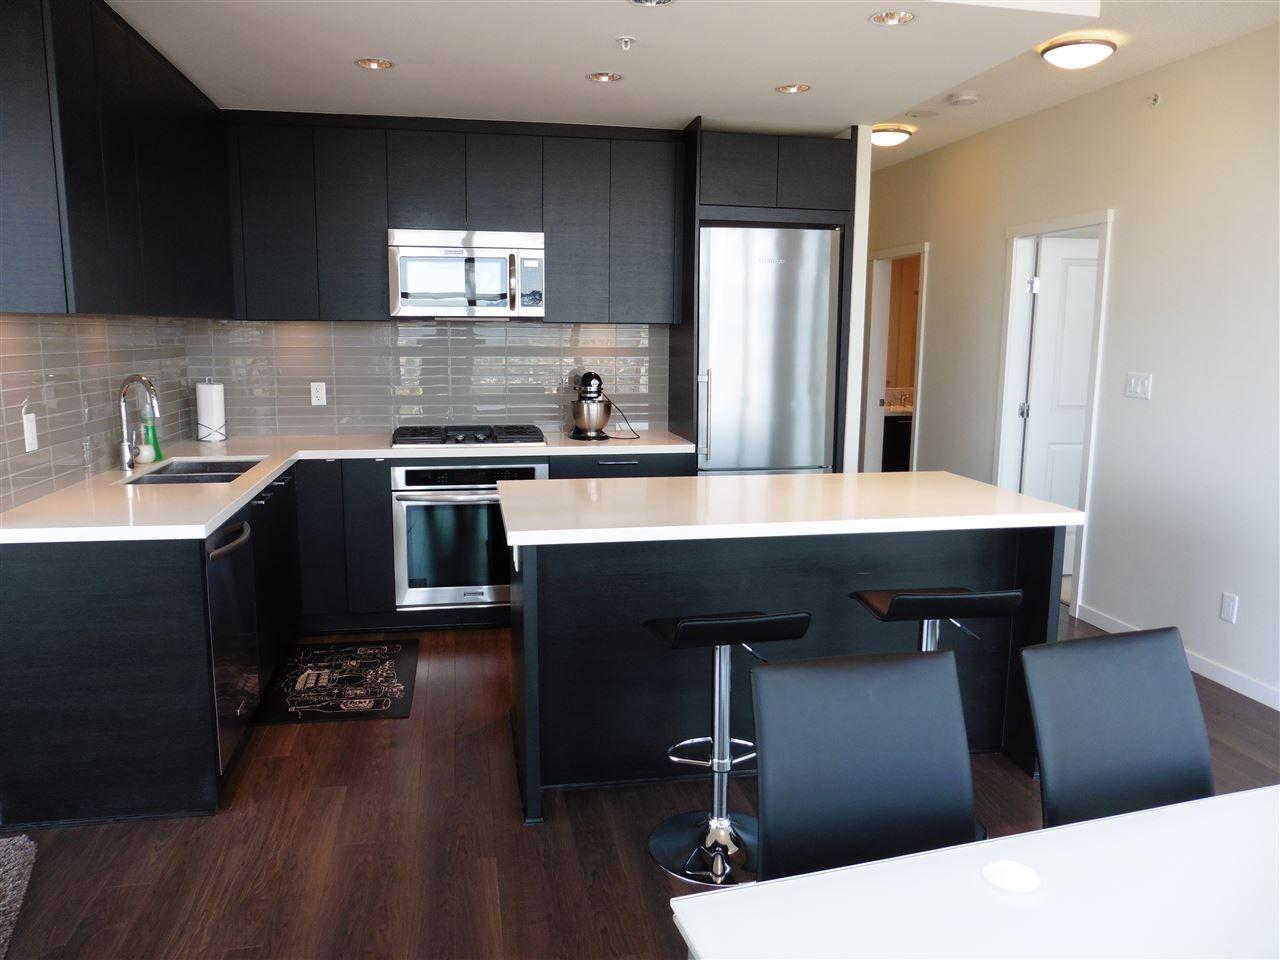 """Photo 6: Photos: 3702 4880 BENNETT Street in Burnaby: Metrotown Condo for sale in """"CHANCELLOR"""" (Burnaby South)  : MLS®# R2006395"""